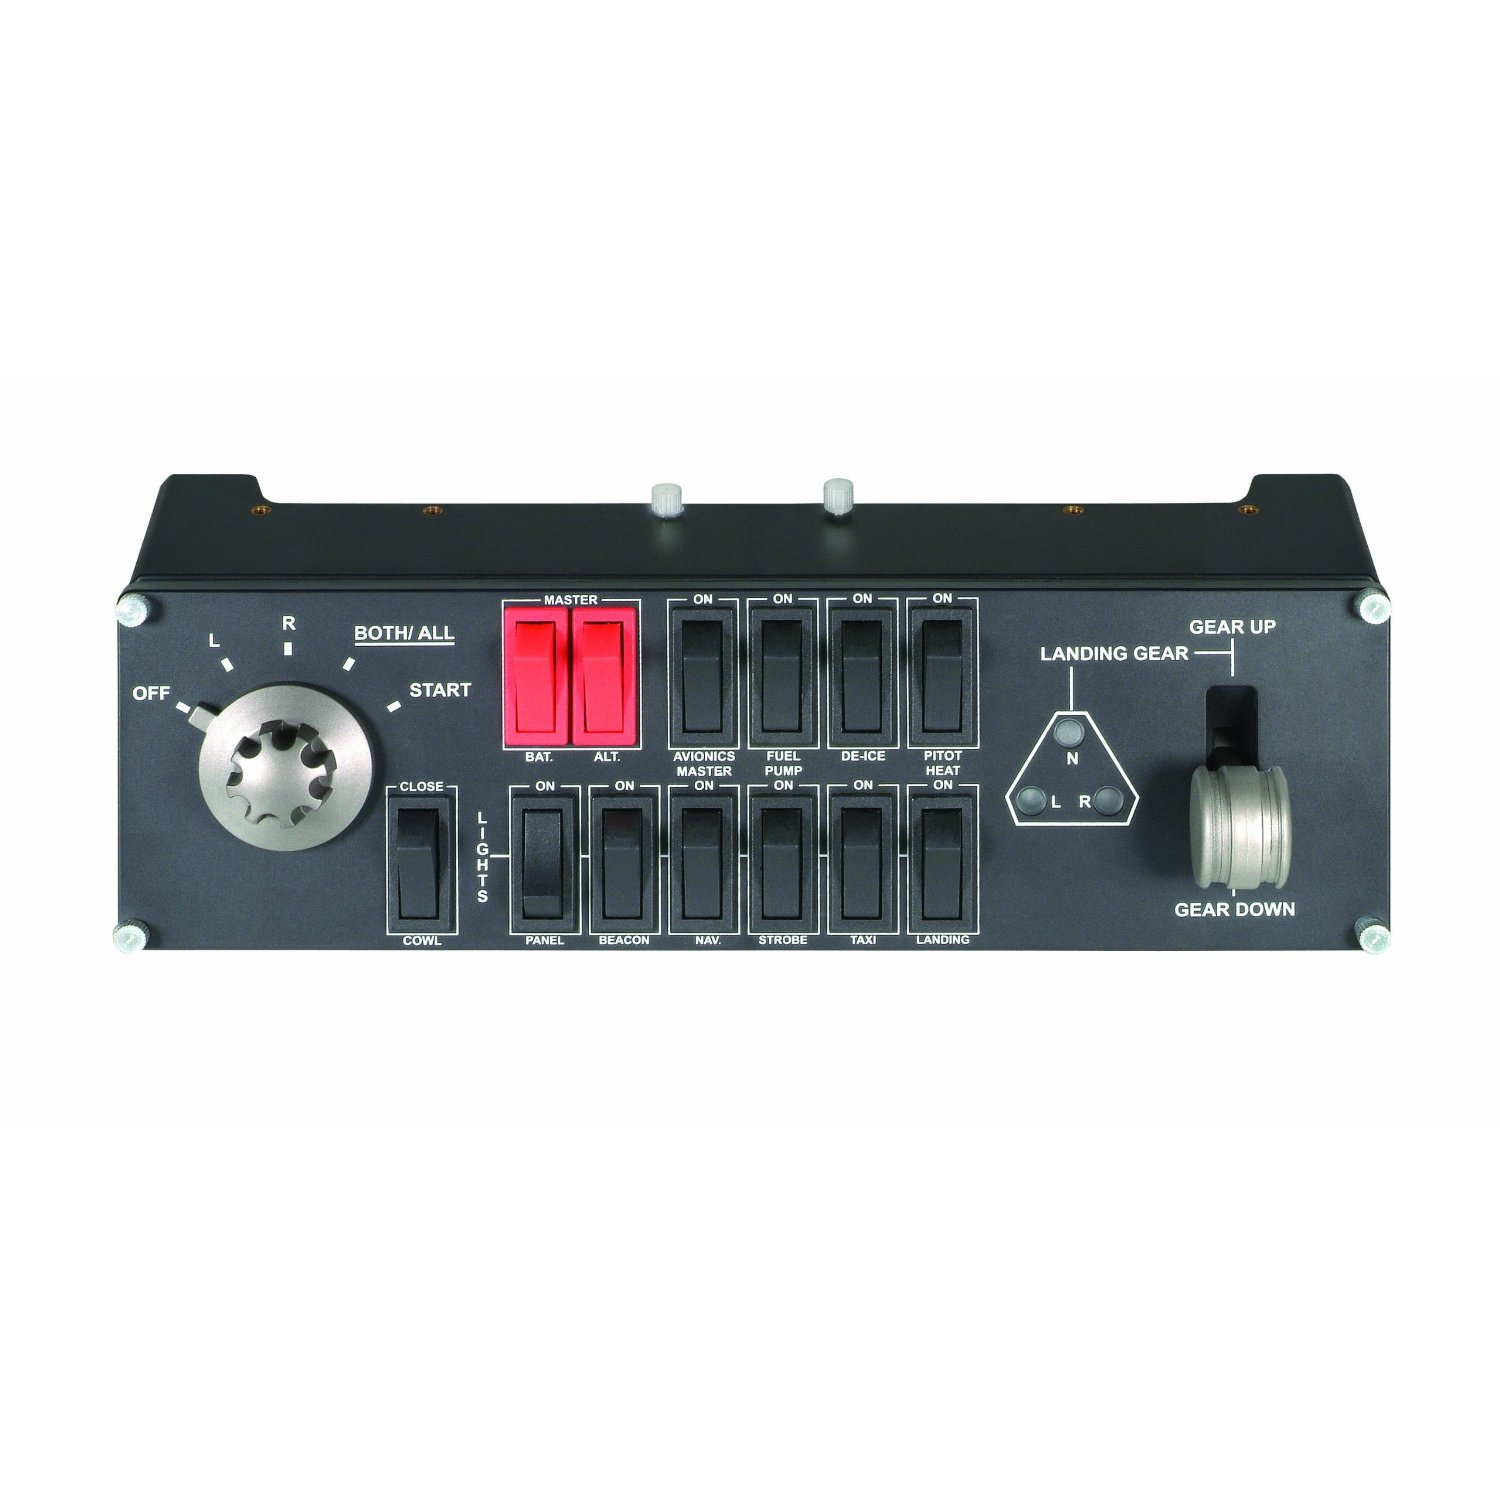 【国外代购】Saitek Pro Flight Switch Panel (MC-SWIP)(PZ55)